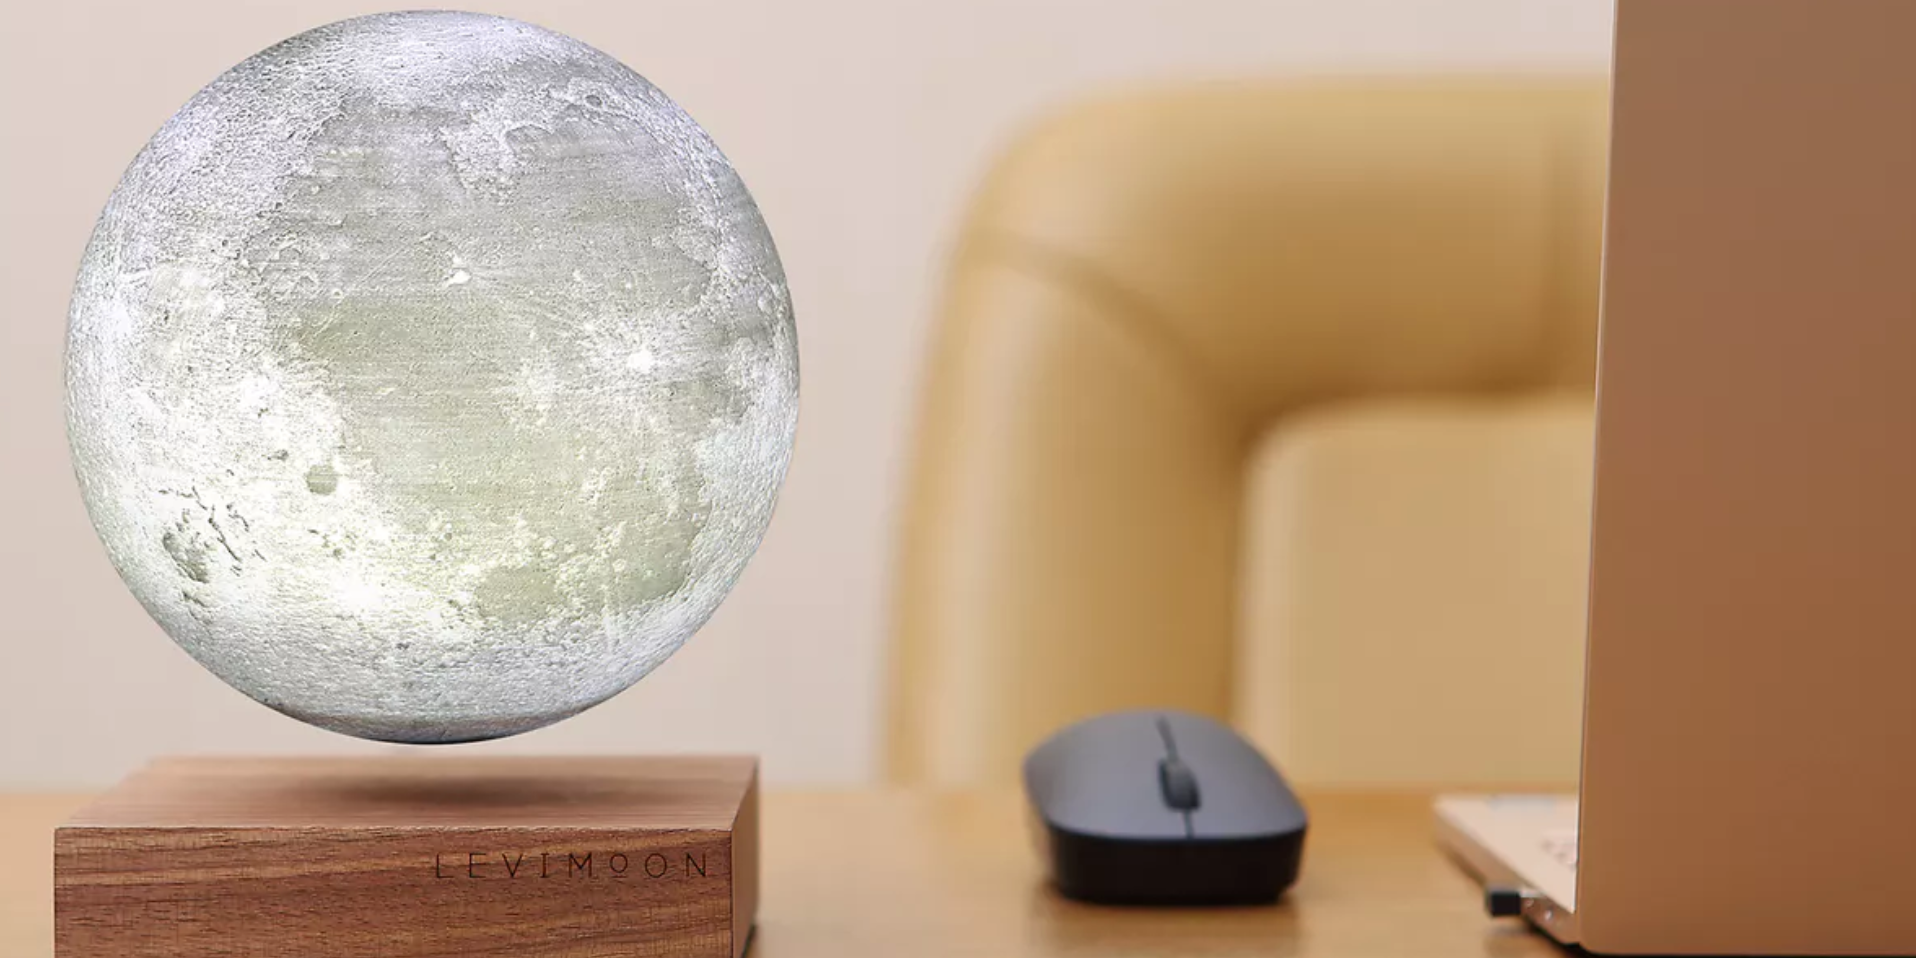 This Levitating Moon Lamp Is Completely Ridiculous and I Must Have It